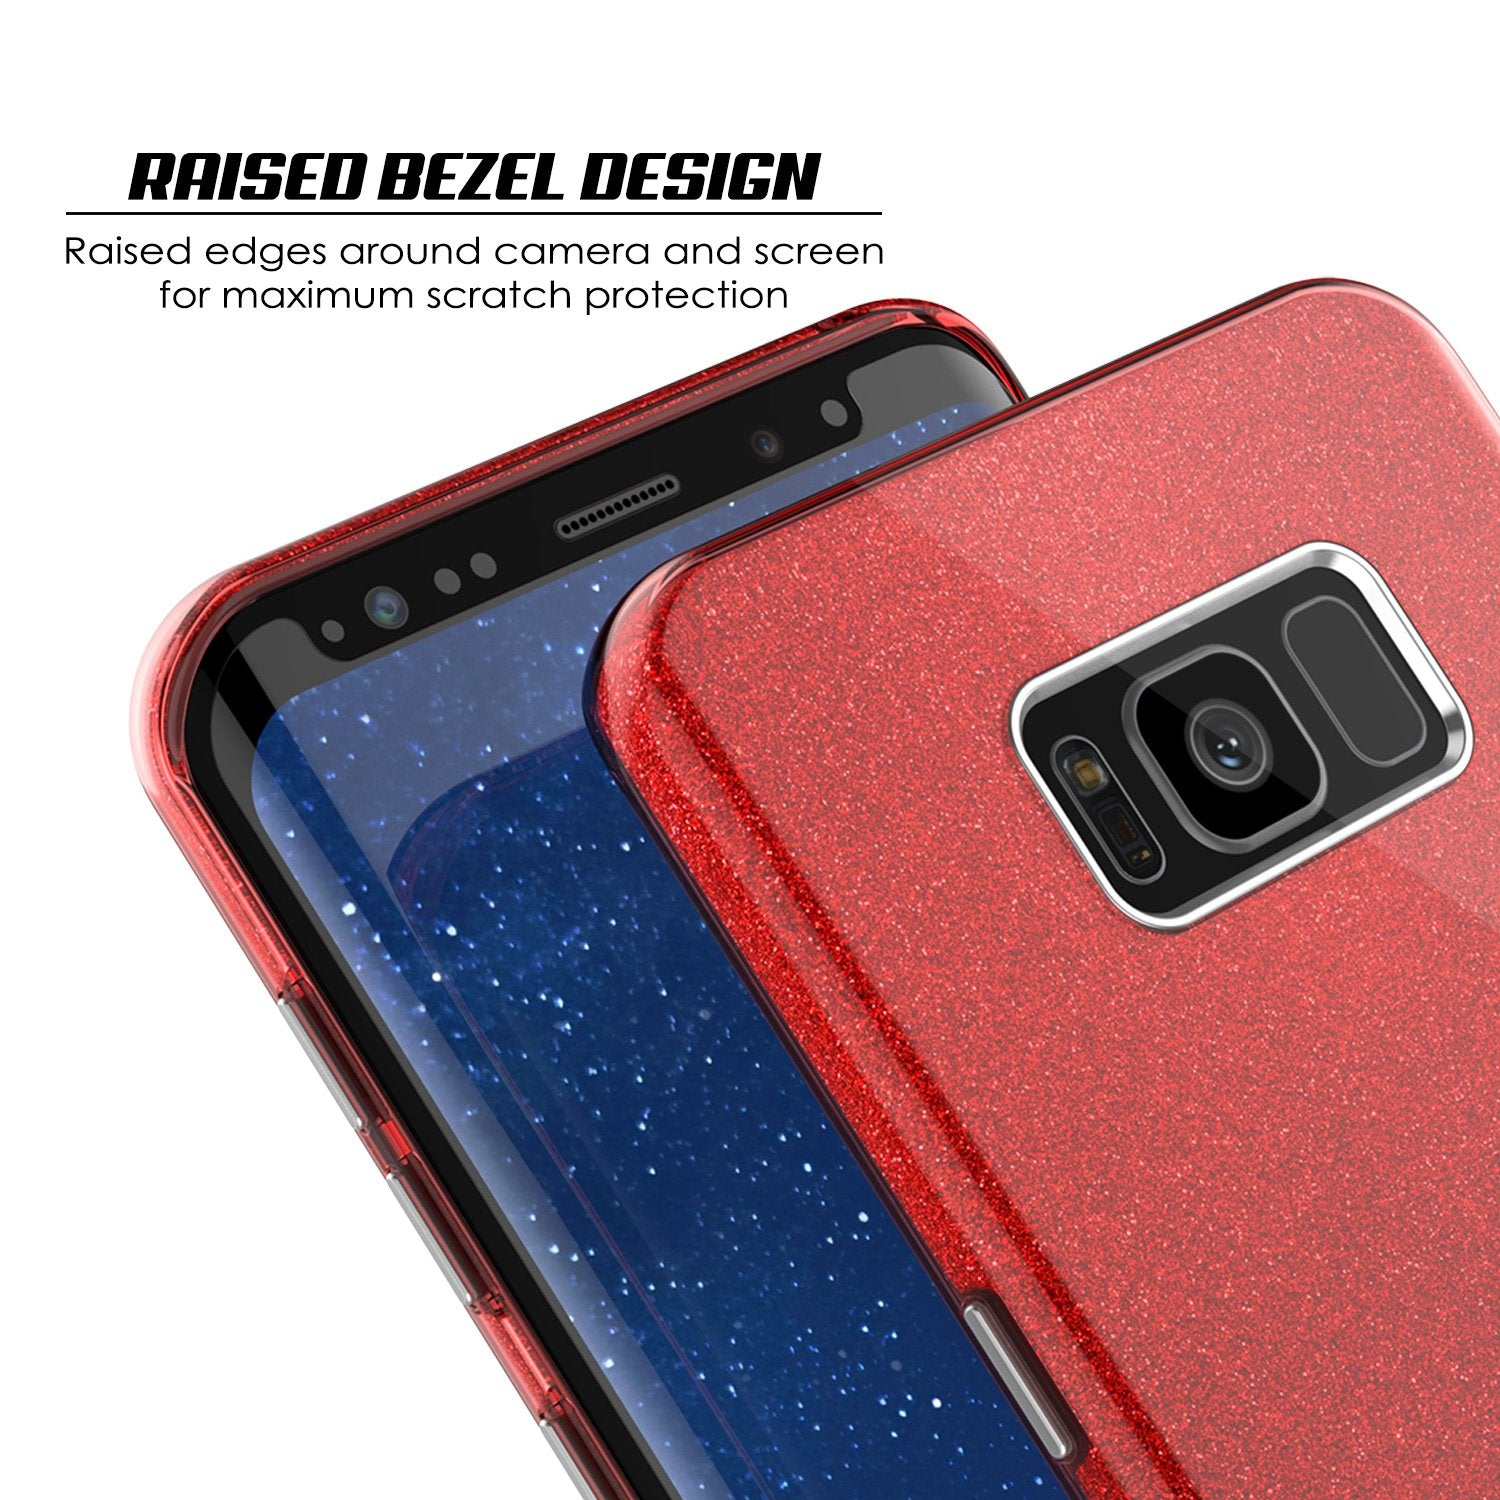 Galaxy S8 Case, Punkcase Galactic 2.0 Series Ultra Slim Protective Armor TPU Cover w/ PunkShield Screen Protector | Lifetime Exchange Warranty | Designed for Samsung Galaxy S8 [Red]